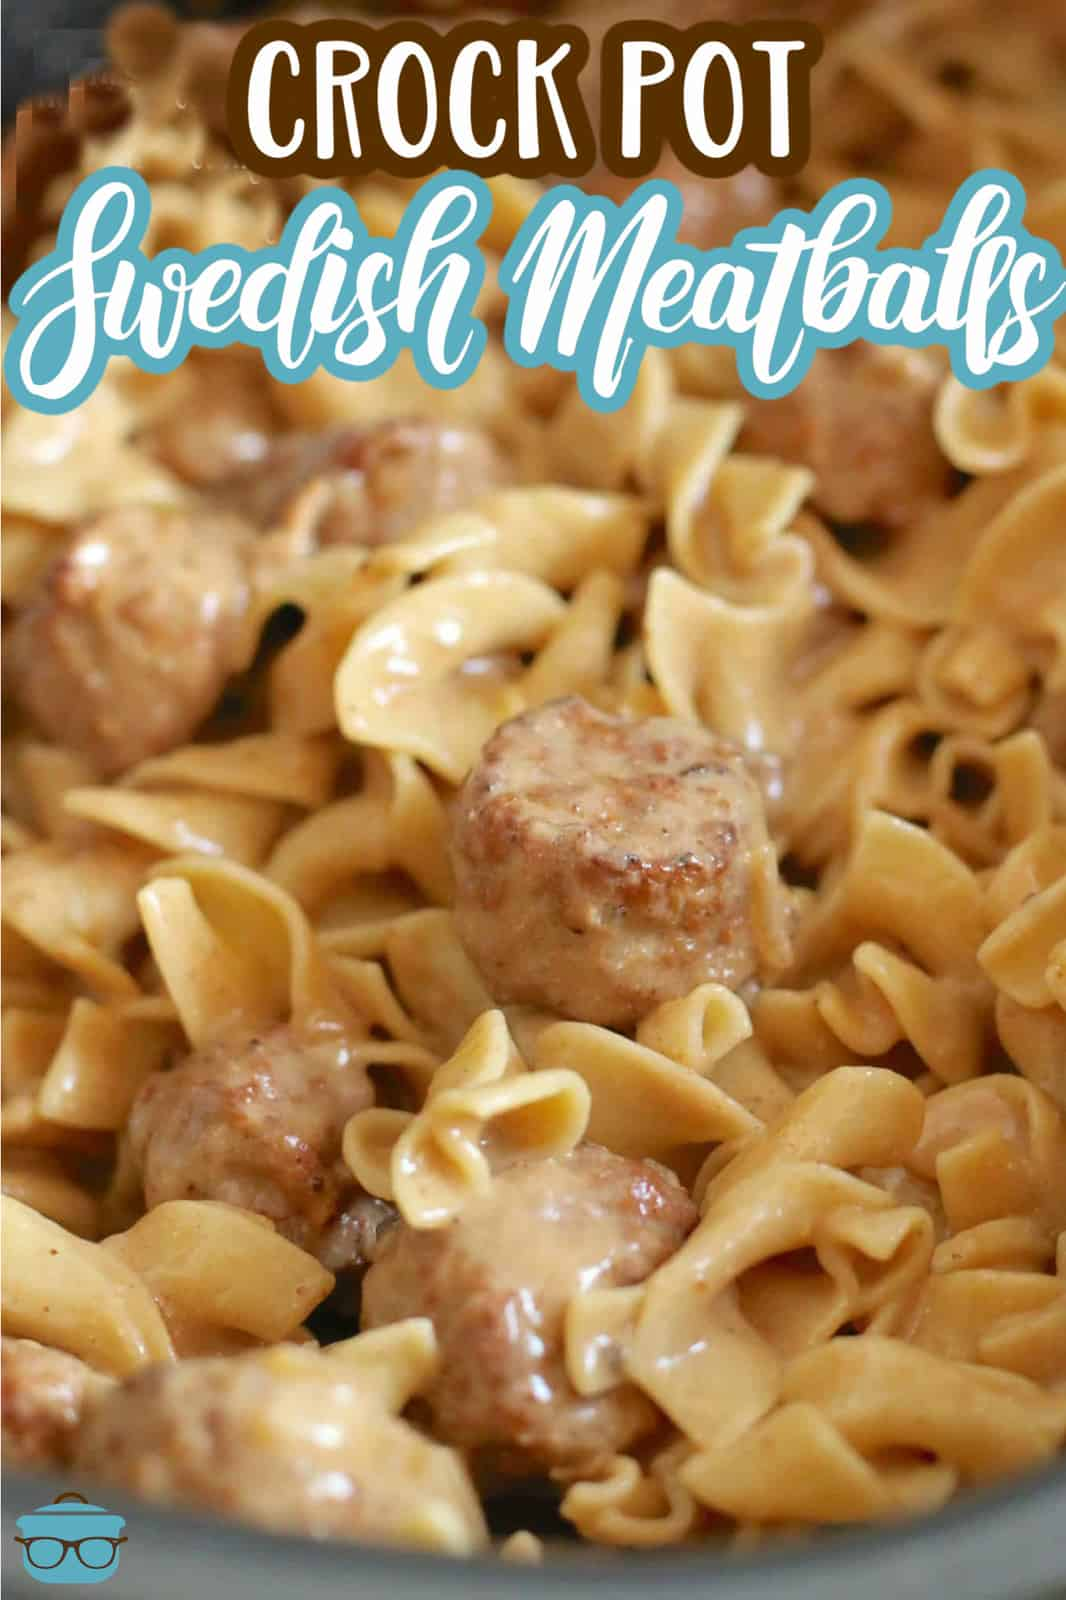 Swedish Meatballs with cooked egg noodles combined and shown in an oval slow cooker